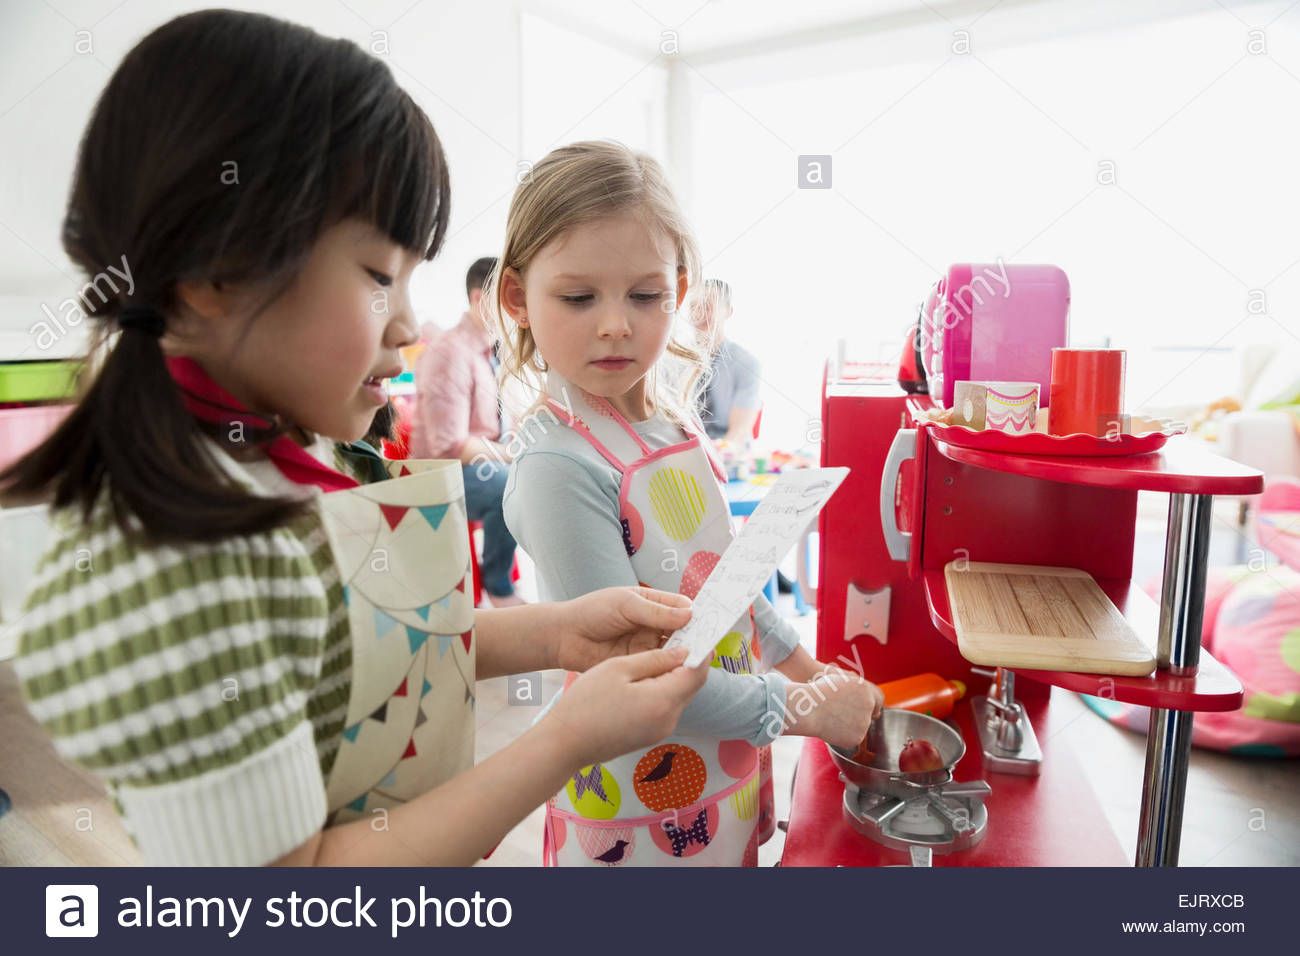 Girls playing pretend restaurant - Stock Image